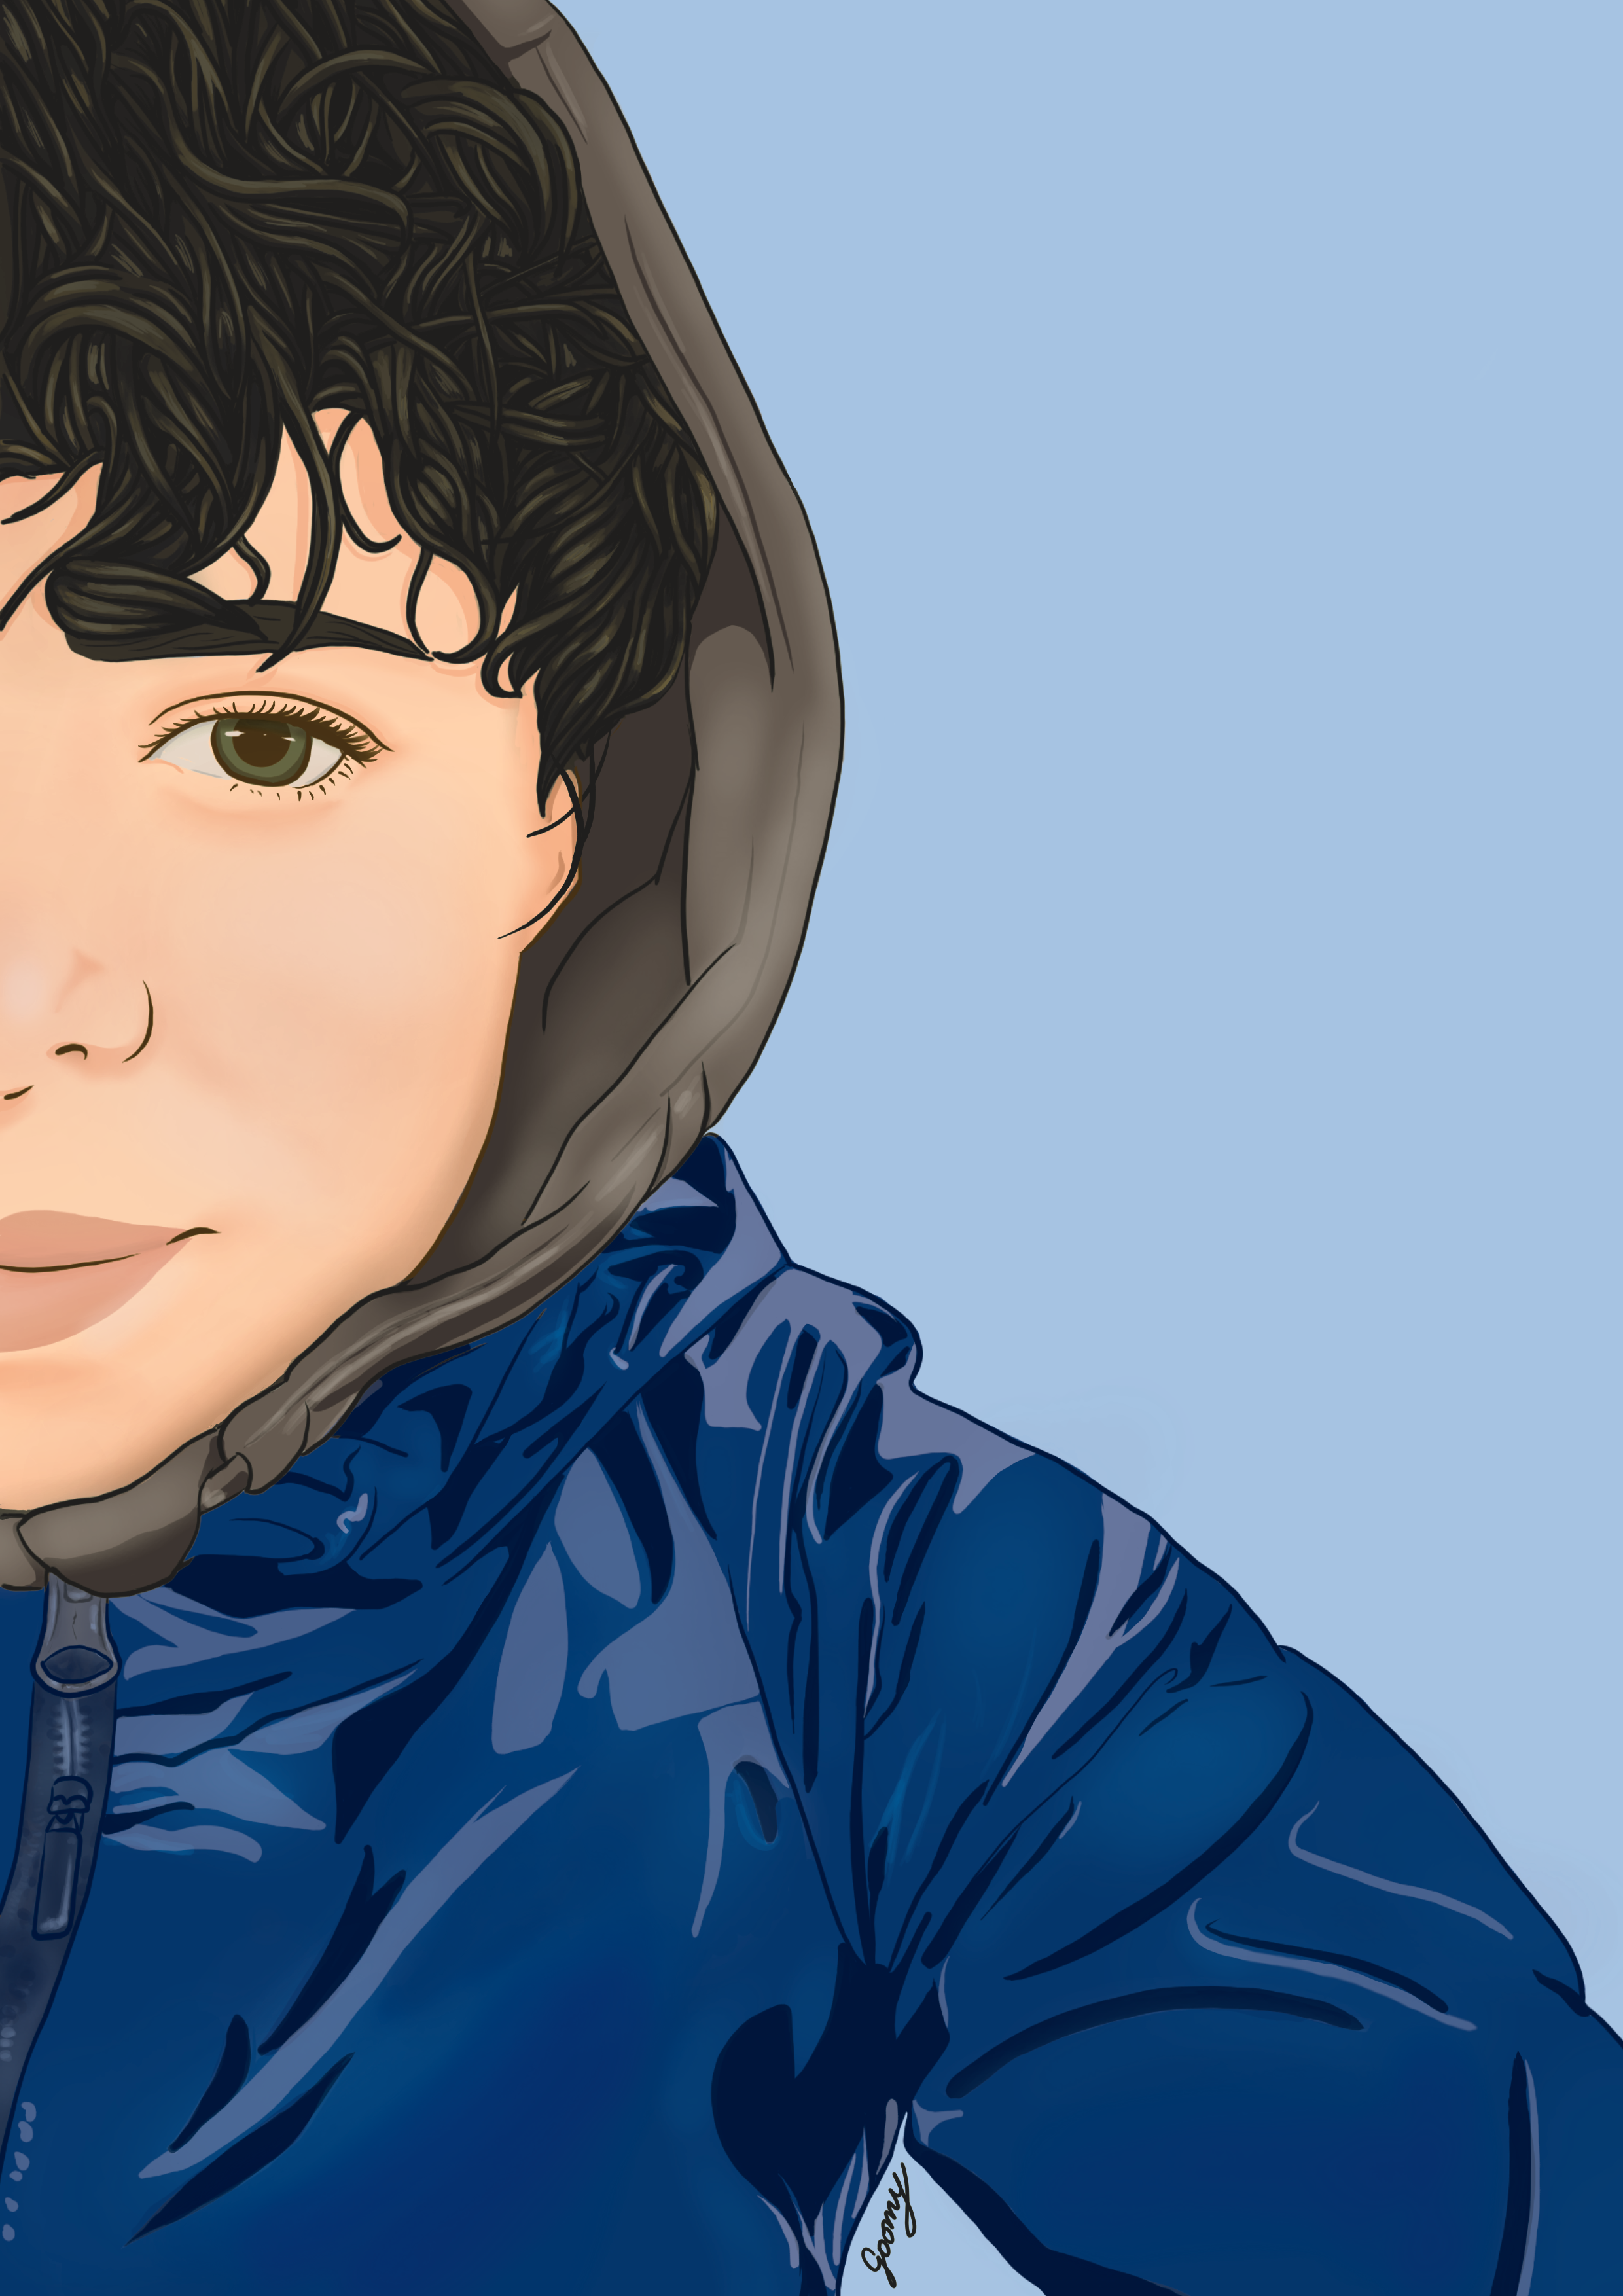 digital drawing of a woman with short hair wearing a blue parka